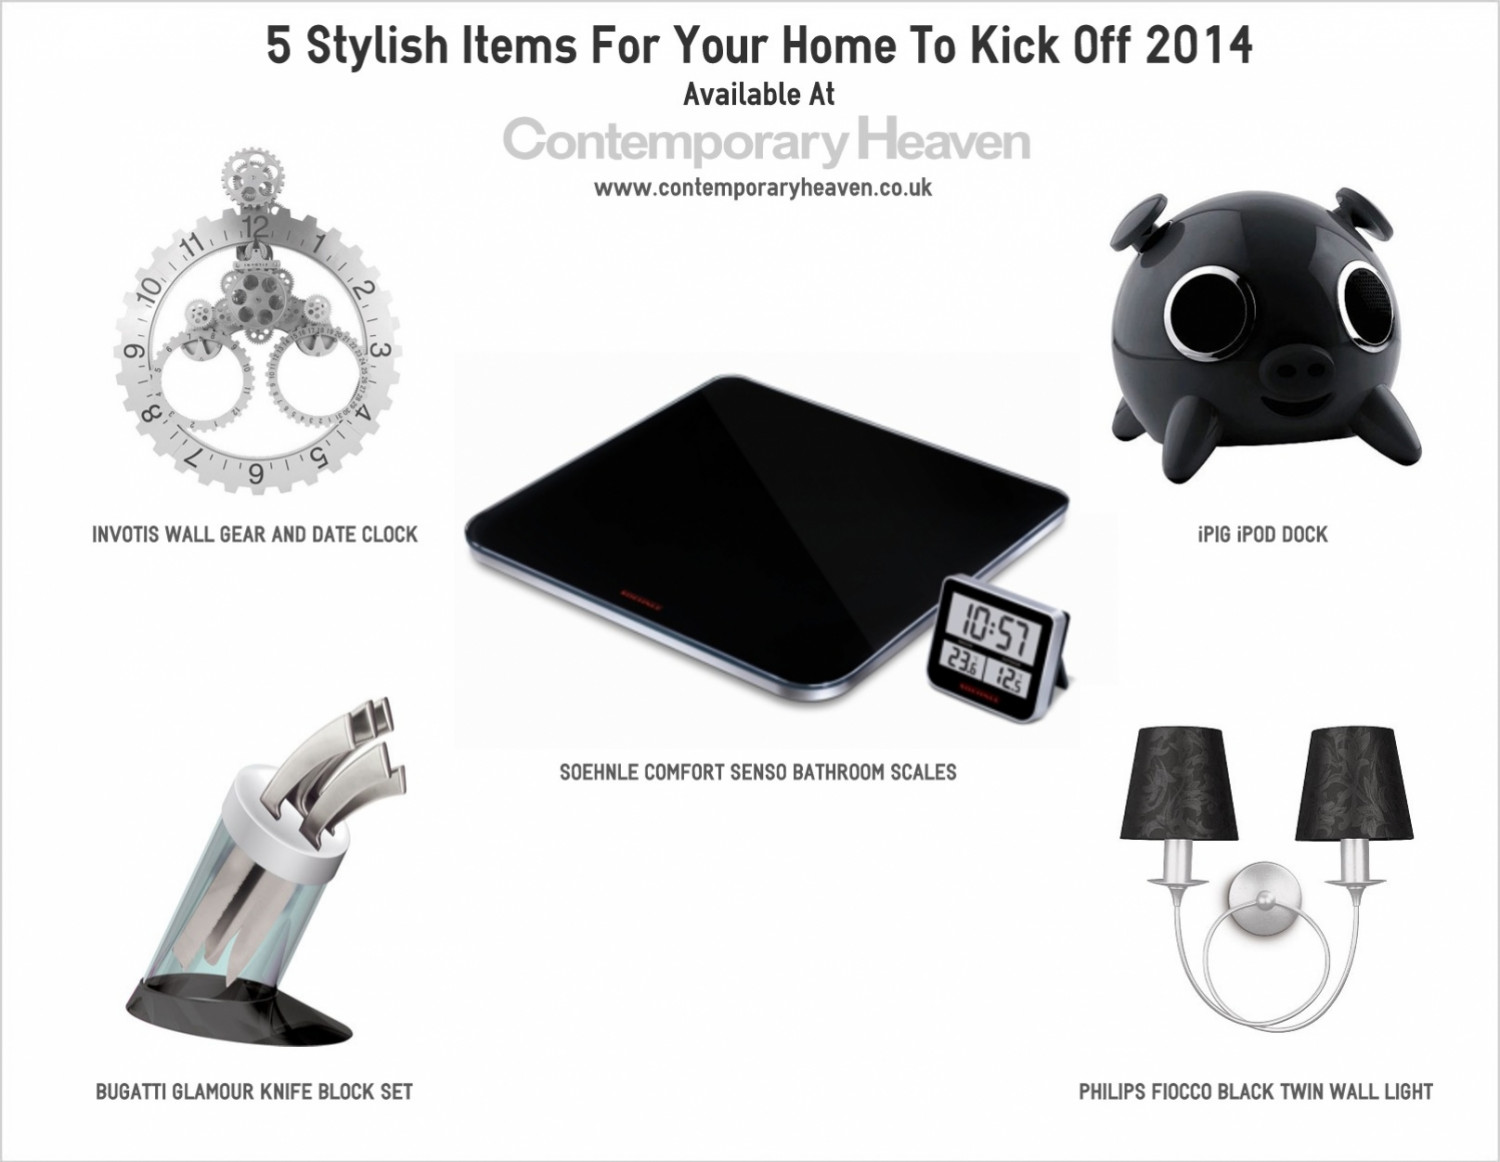 5 Stylish Items For Your Home To Kick Off 2014 Infographic